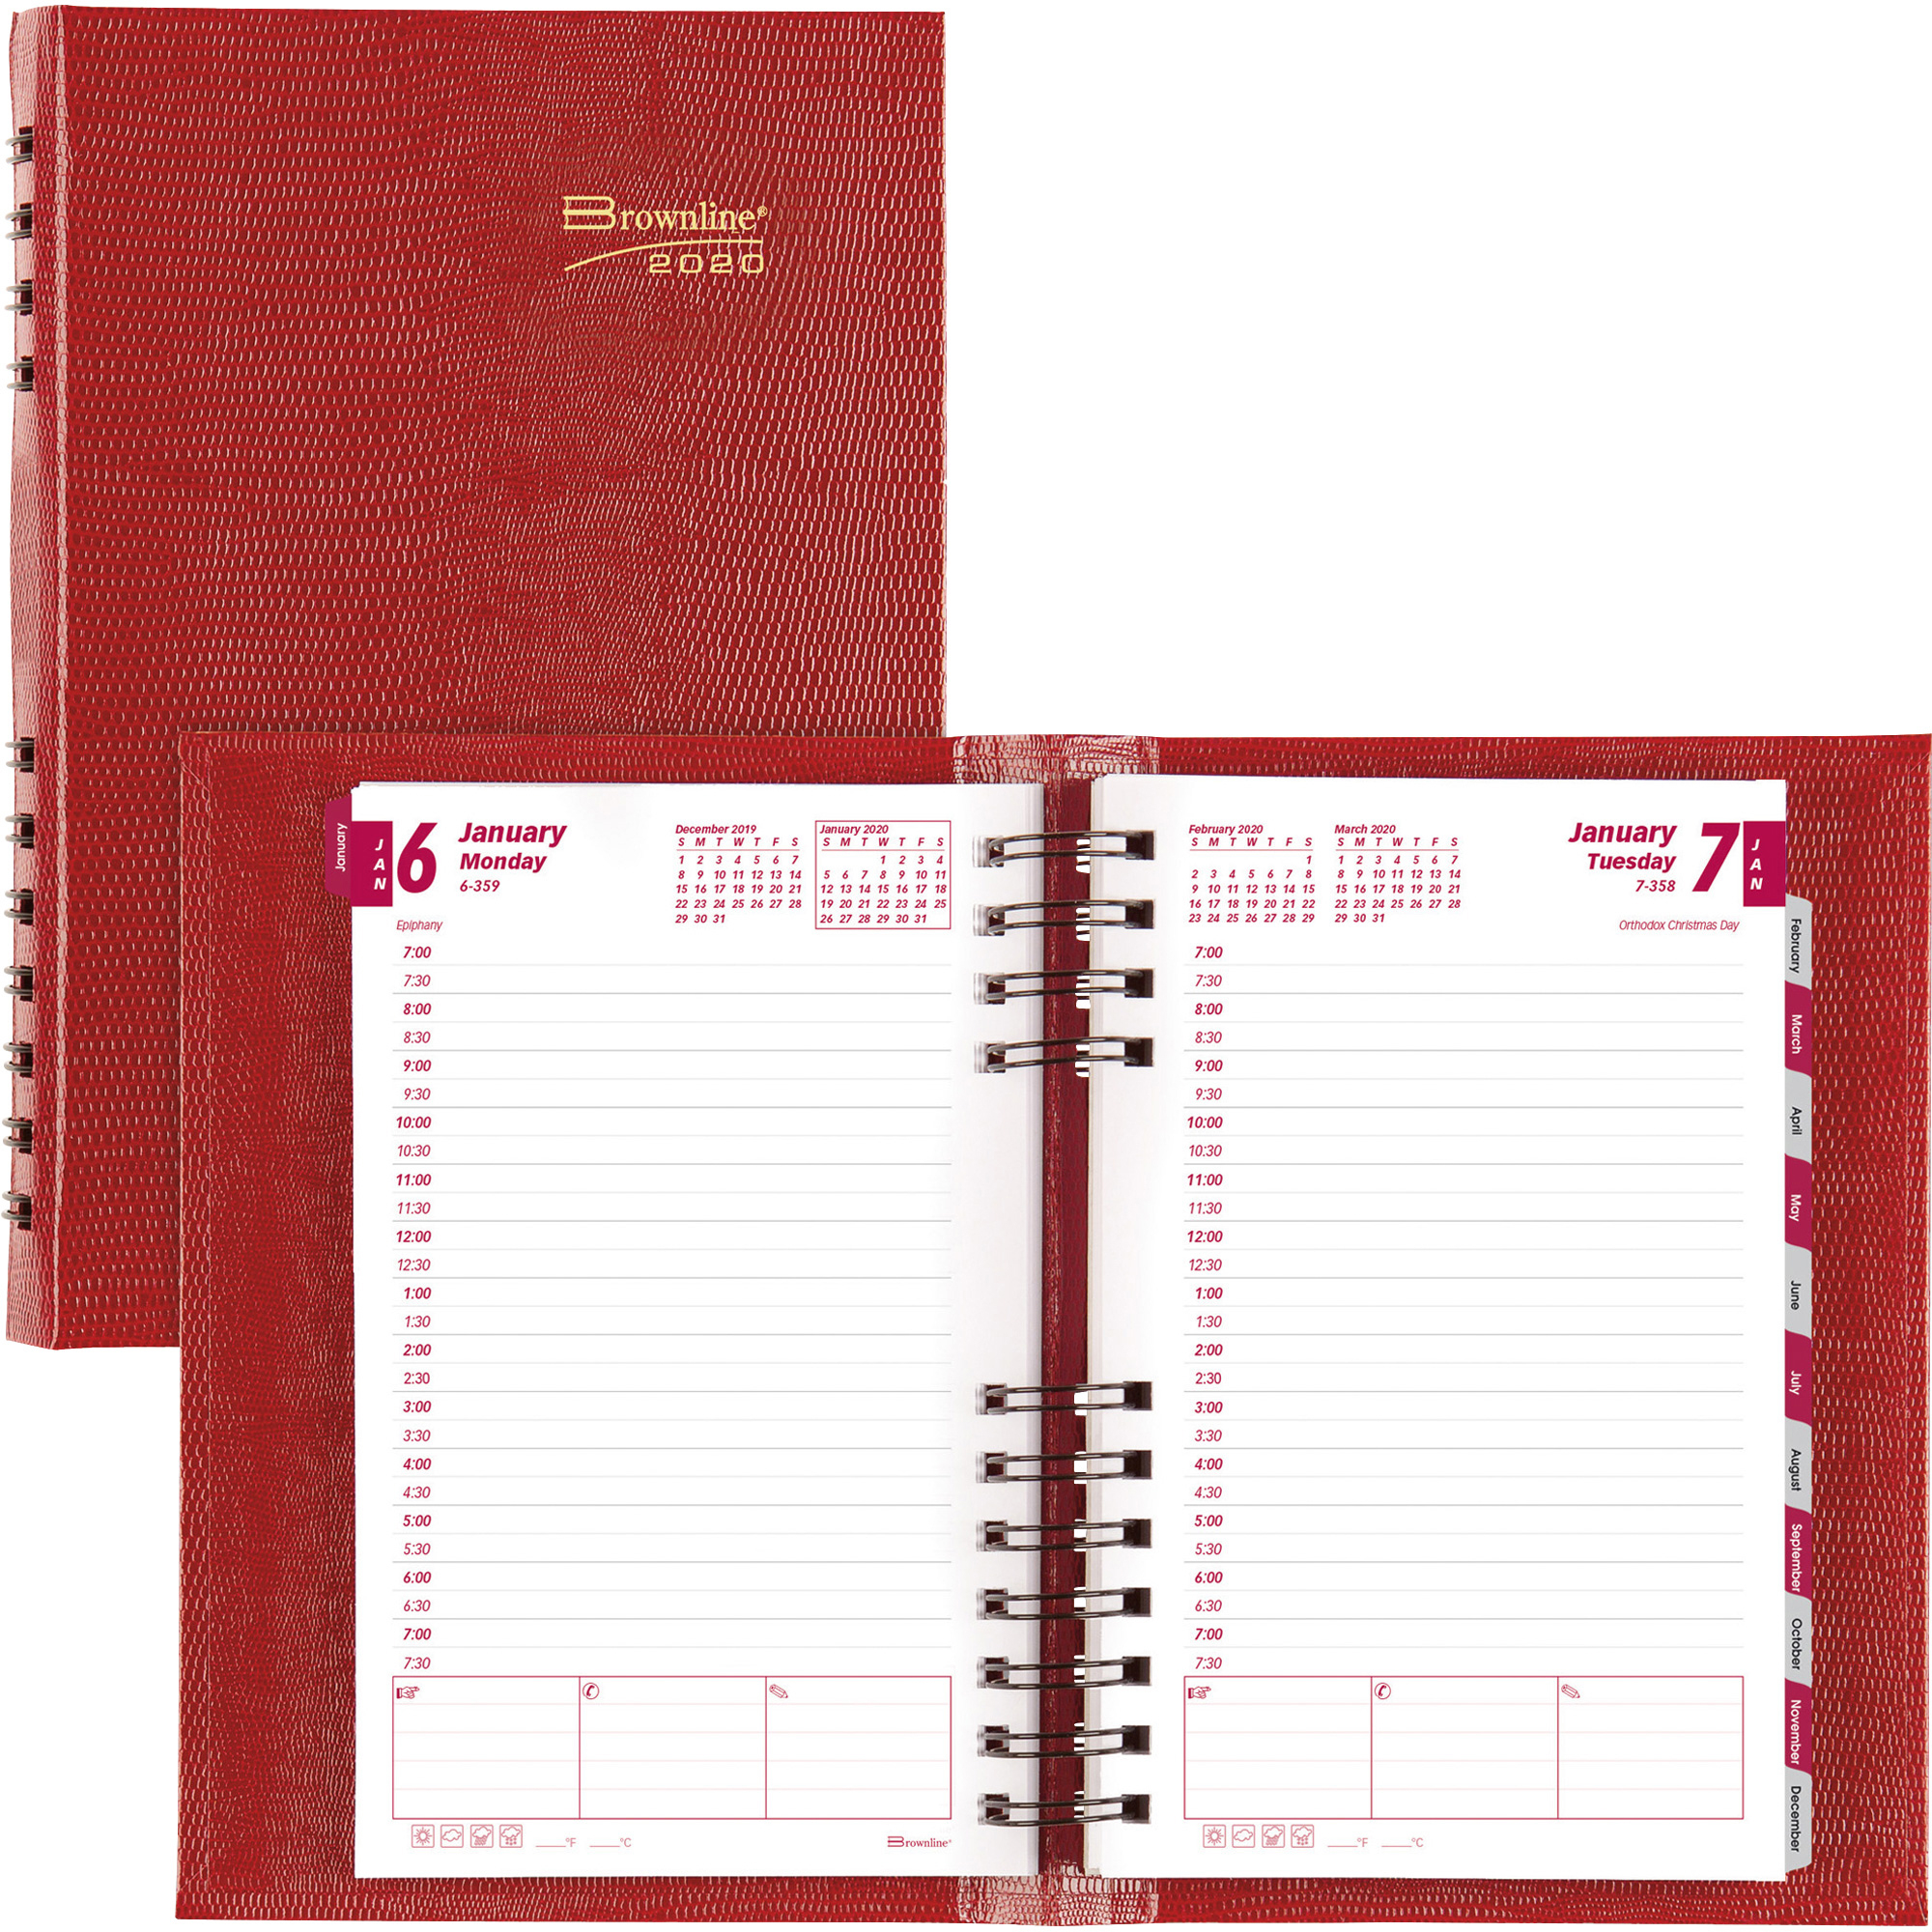 Blueline Brownline Coilpro Daily Appointment Planner - Daily